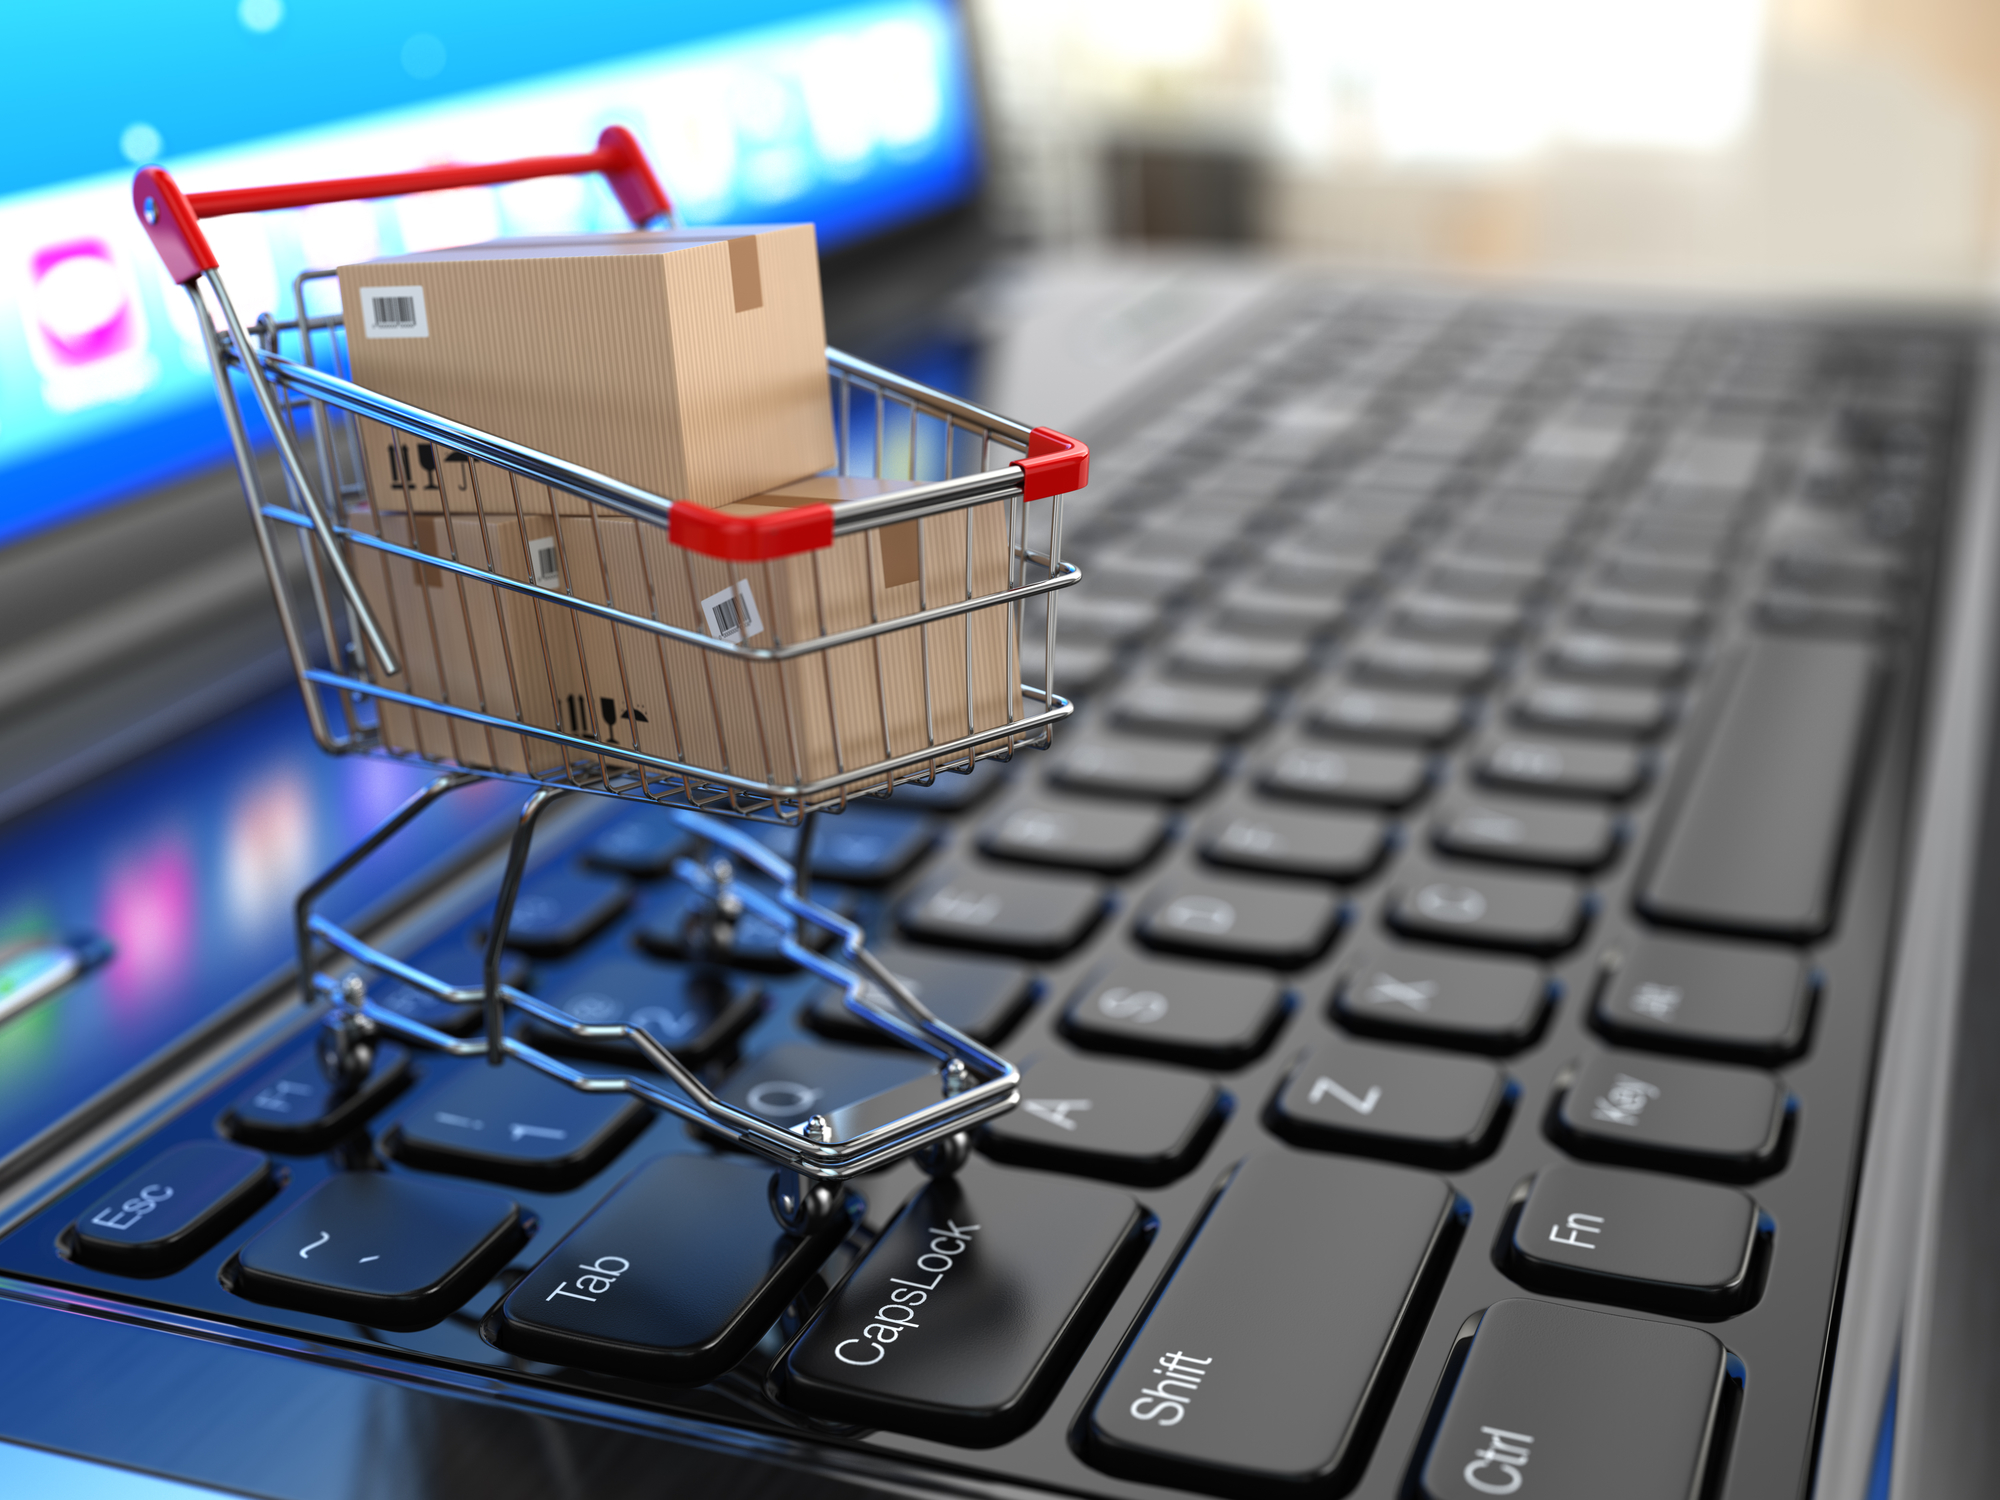 Our 3 Top Tips for eCommerce Web Design Success